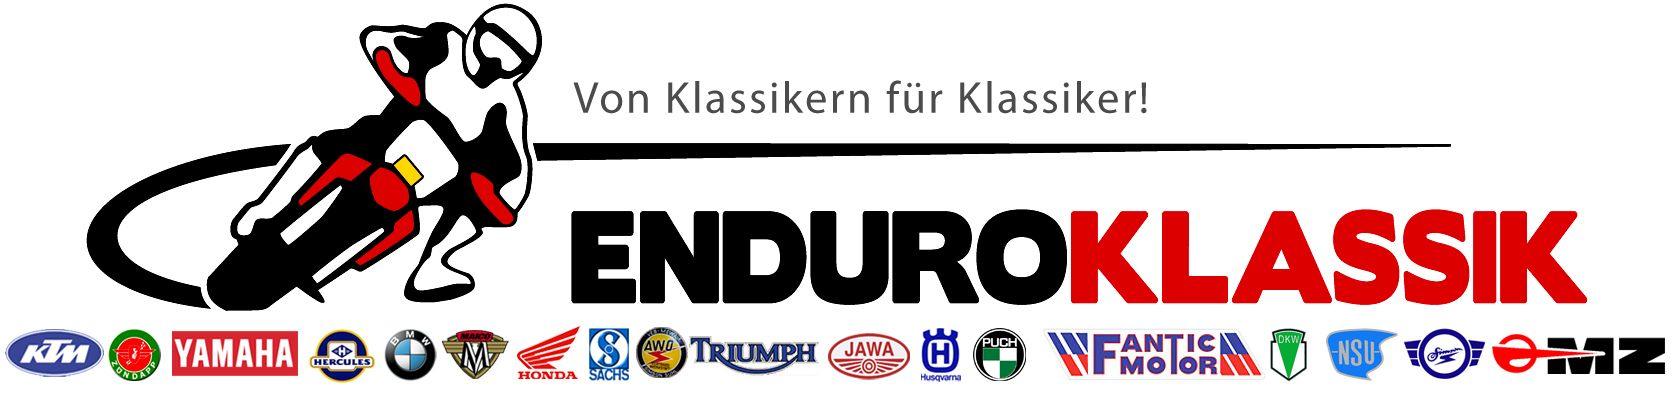 Enduro-Klassik.de